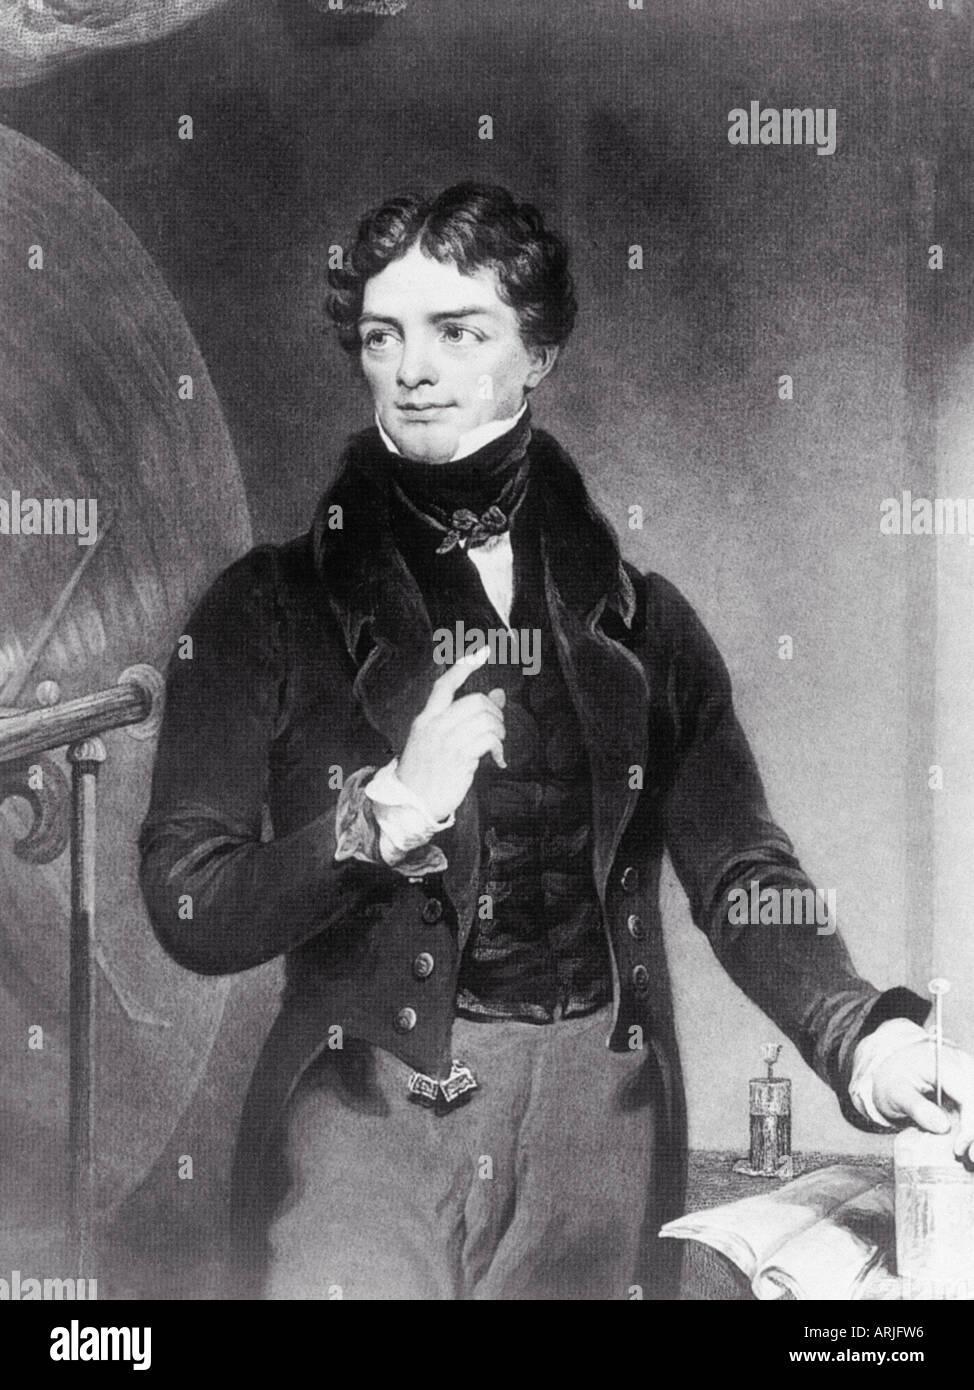 MICHAEL FARADAY English physicist and chemist 1791 to 1867 who discovered electomagnetism leading to the invention of the dynamo - Stock Image